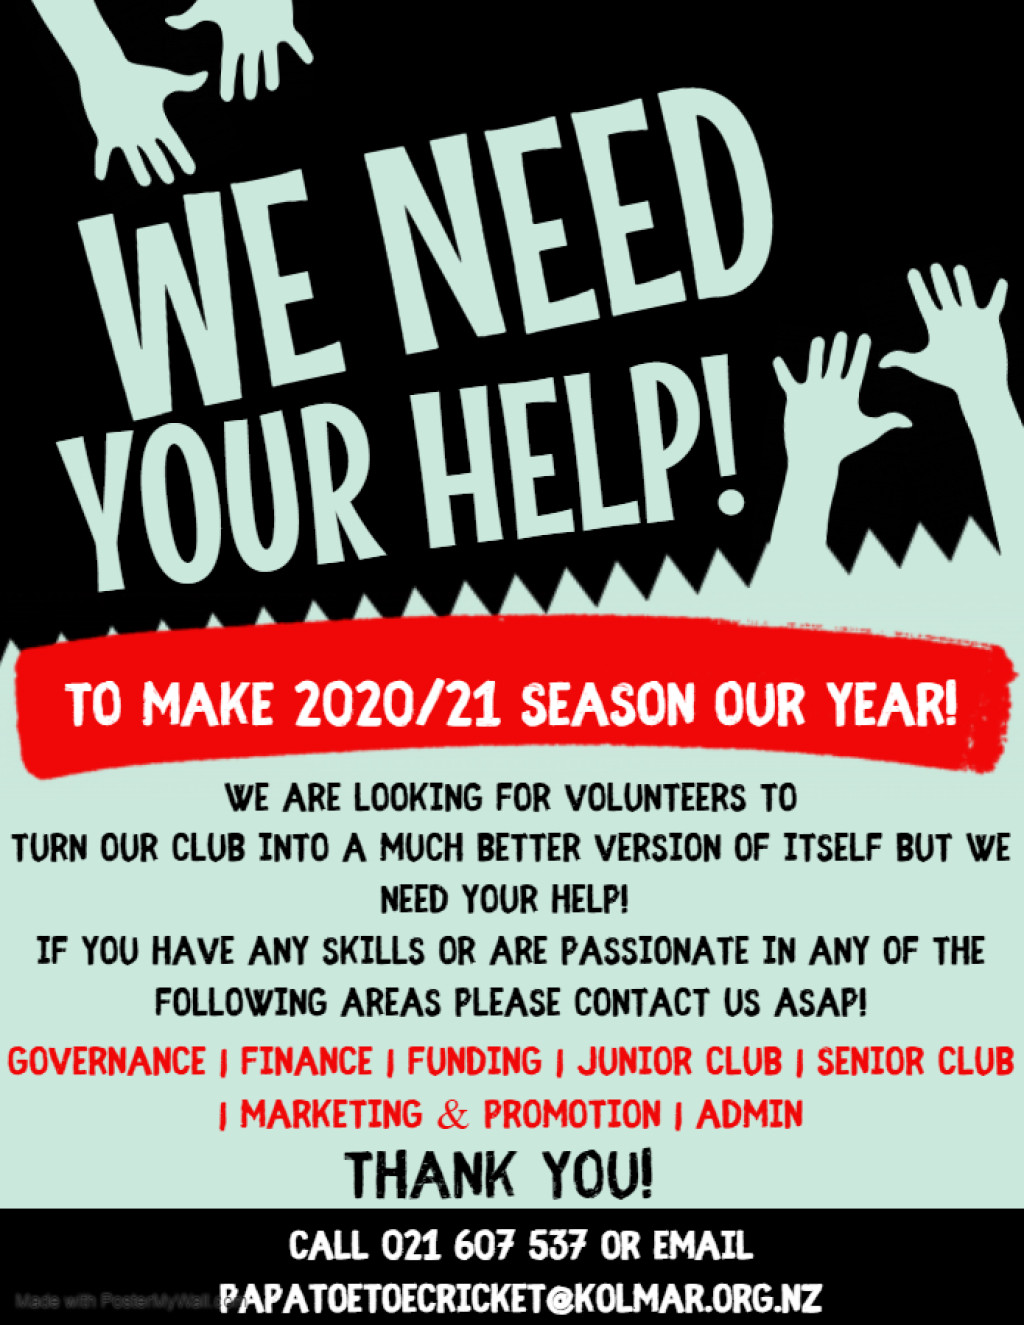 General Manager's Memo to All Members, AGM and Prizegiving Updates plus Volunteers Wanted!